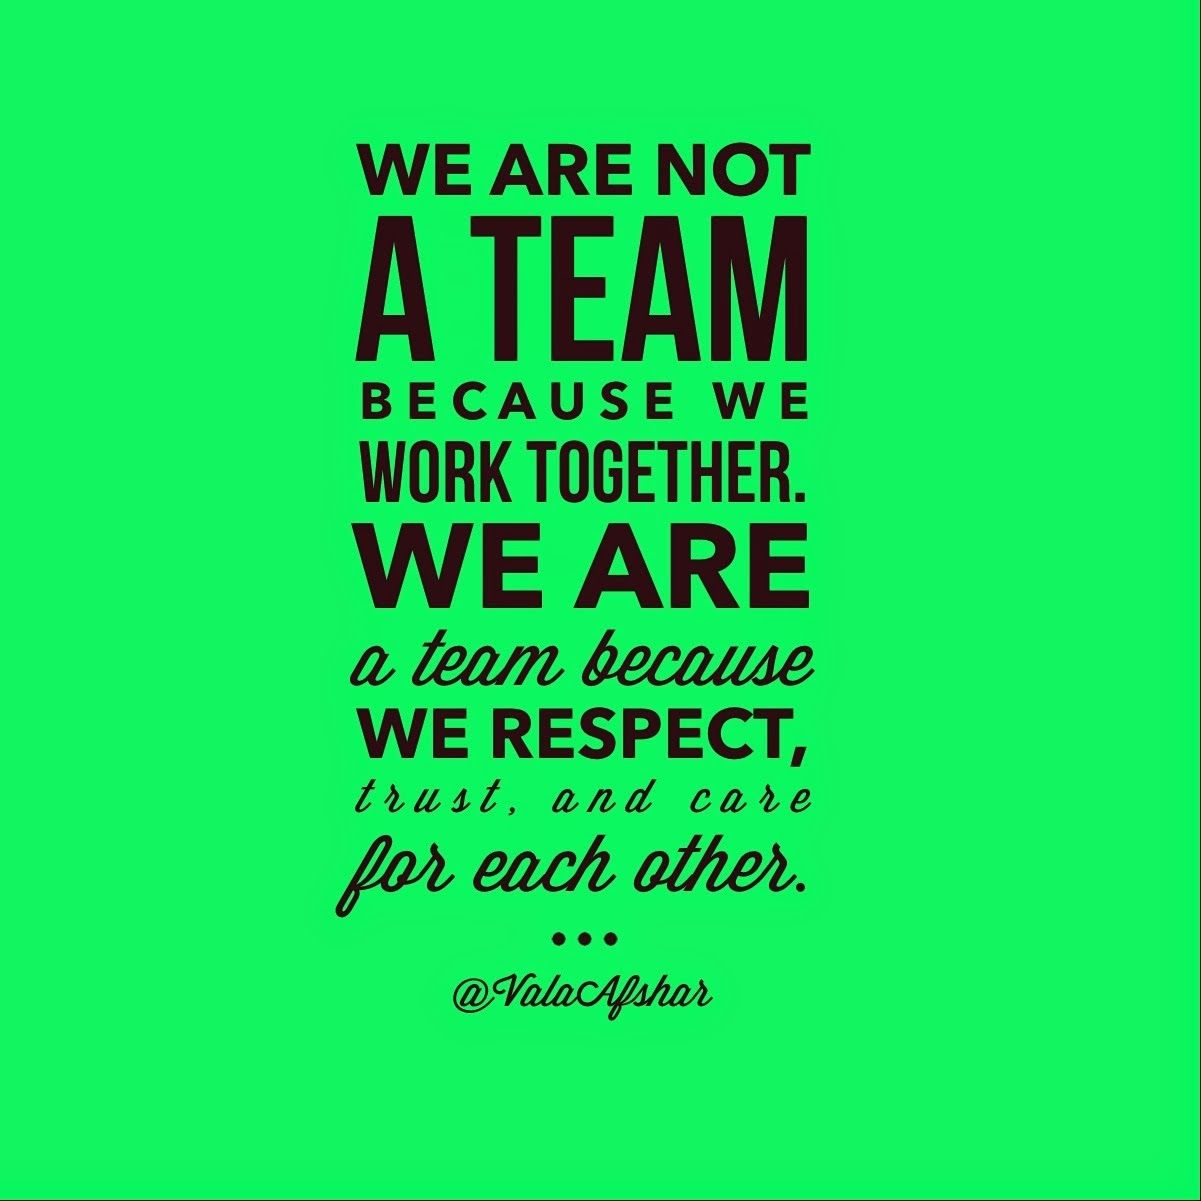 Team Building Quotes Fascinating 30 Best Teamwork Quotes  Team Building Teamwork And Volleyball